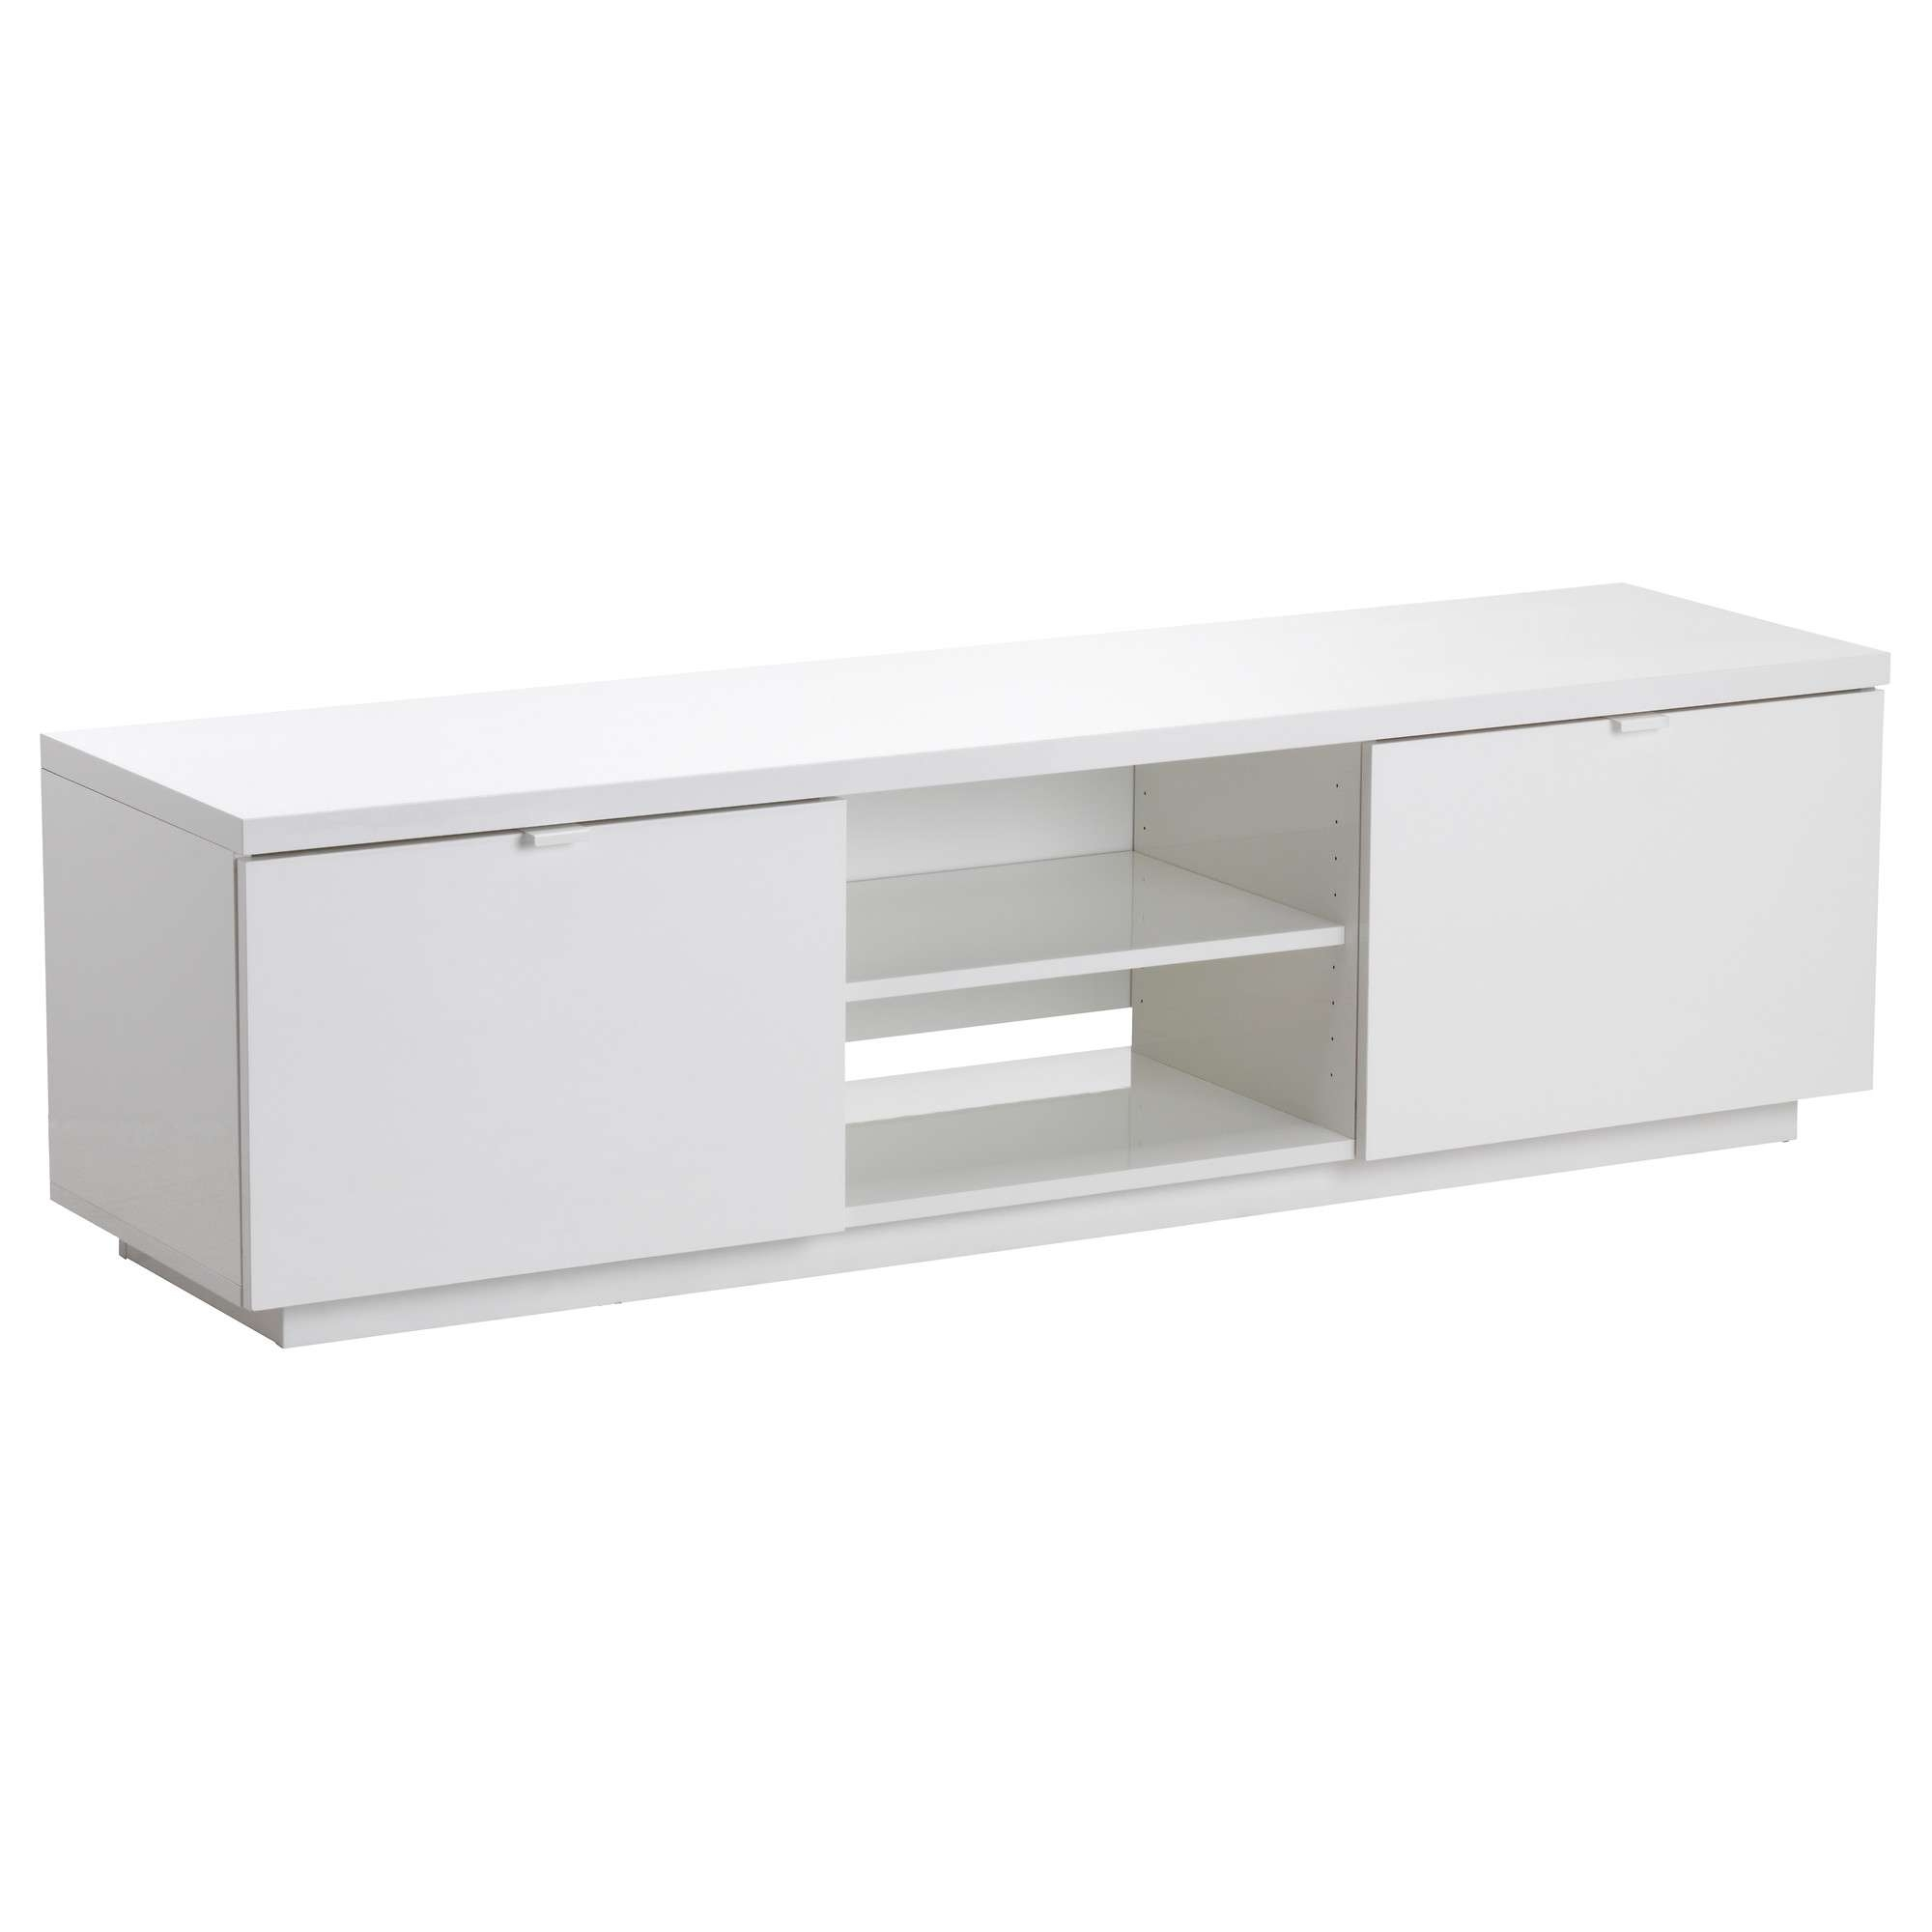 Byås Tv Unit – Ikea With White Gloss Tv Stands With Drawers (View 3 of 15)